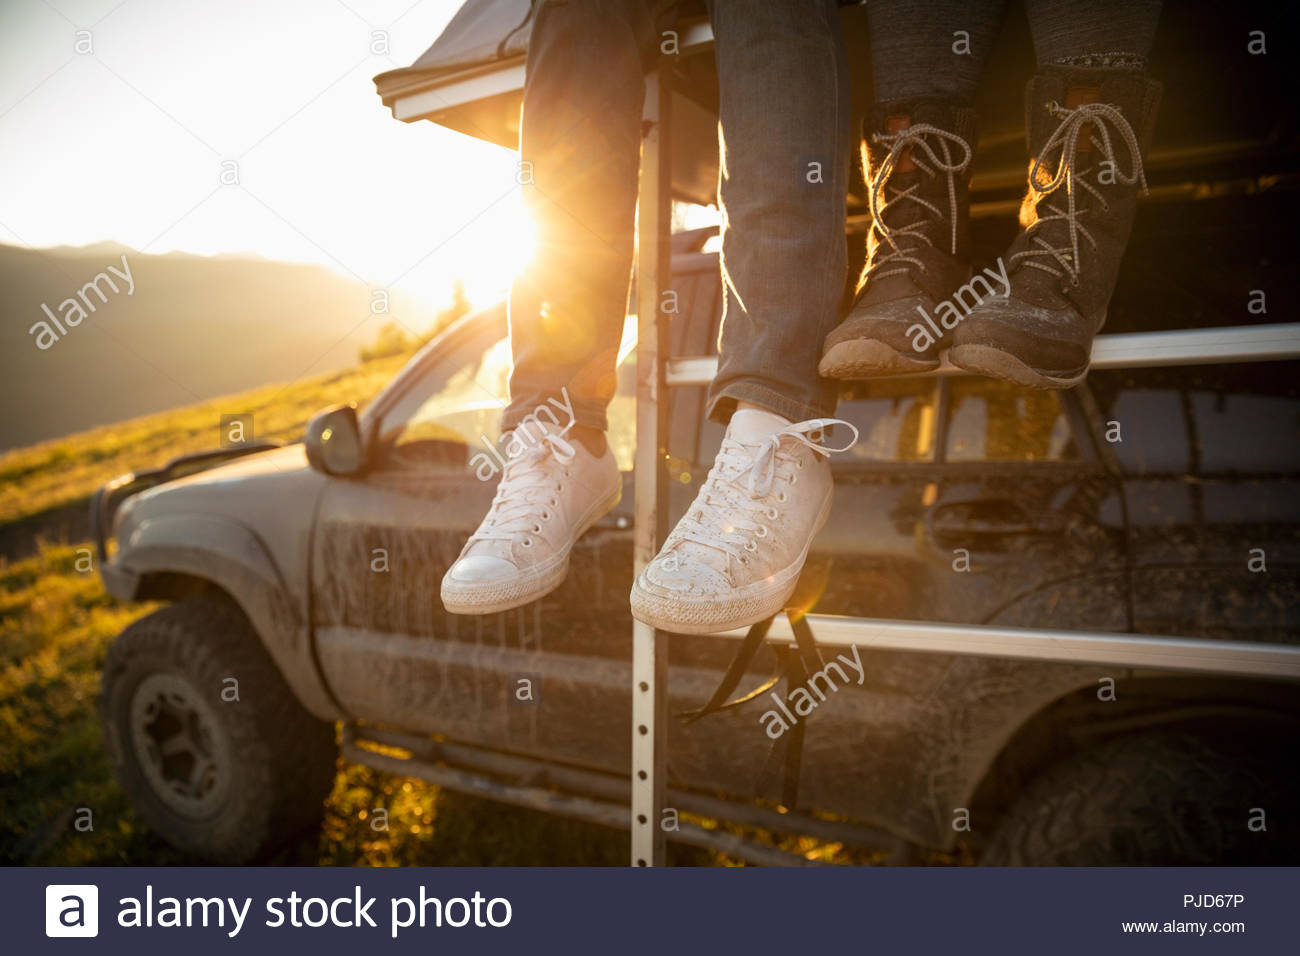 Couple dangling feet from SUV rooftop - Stock Image